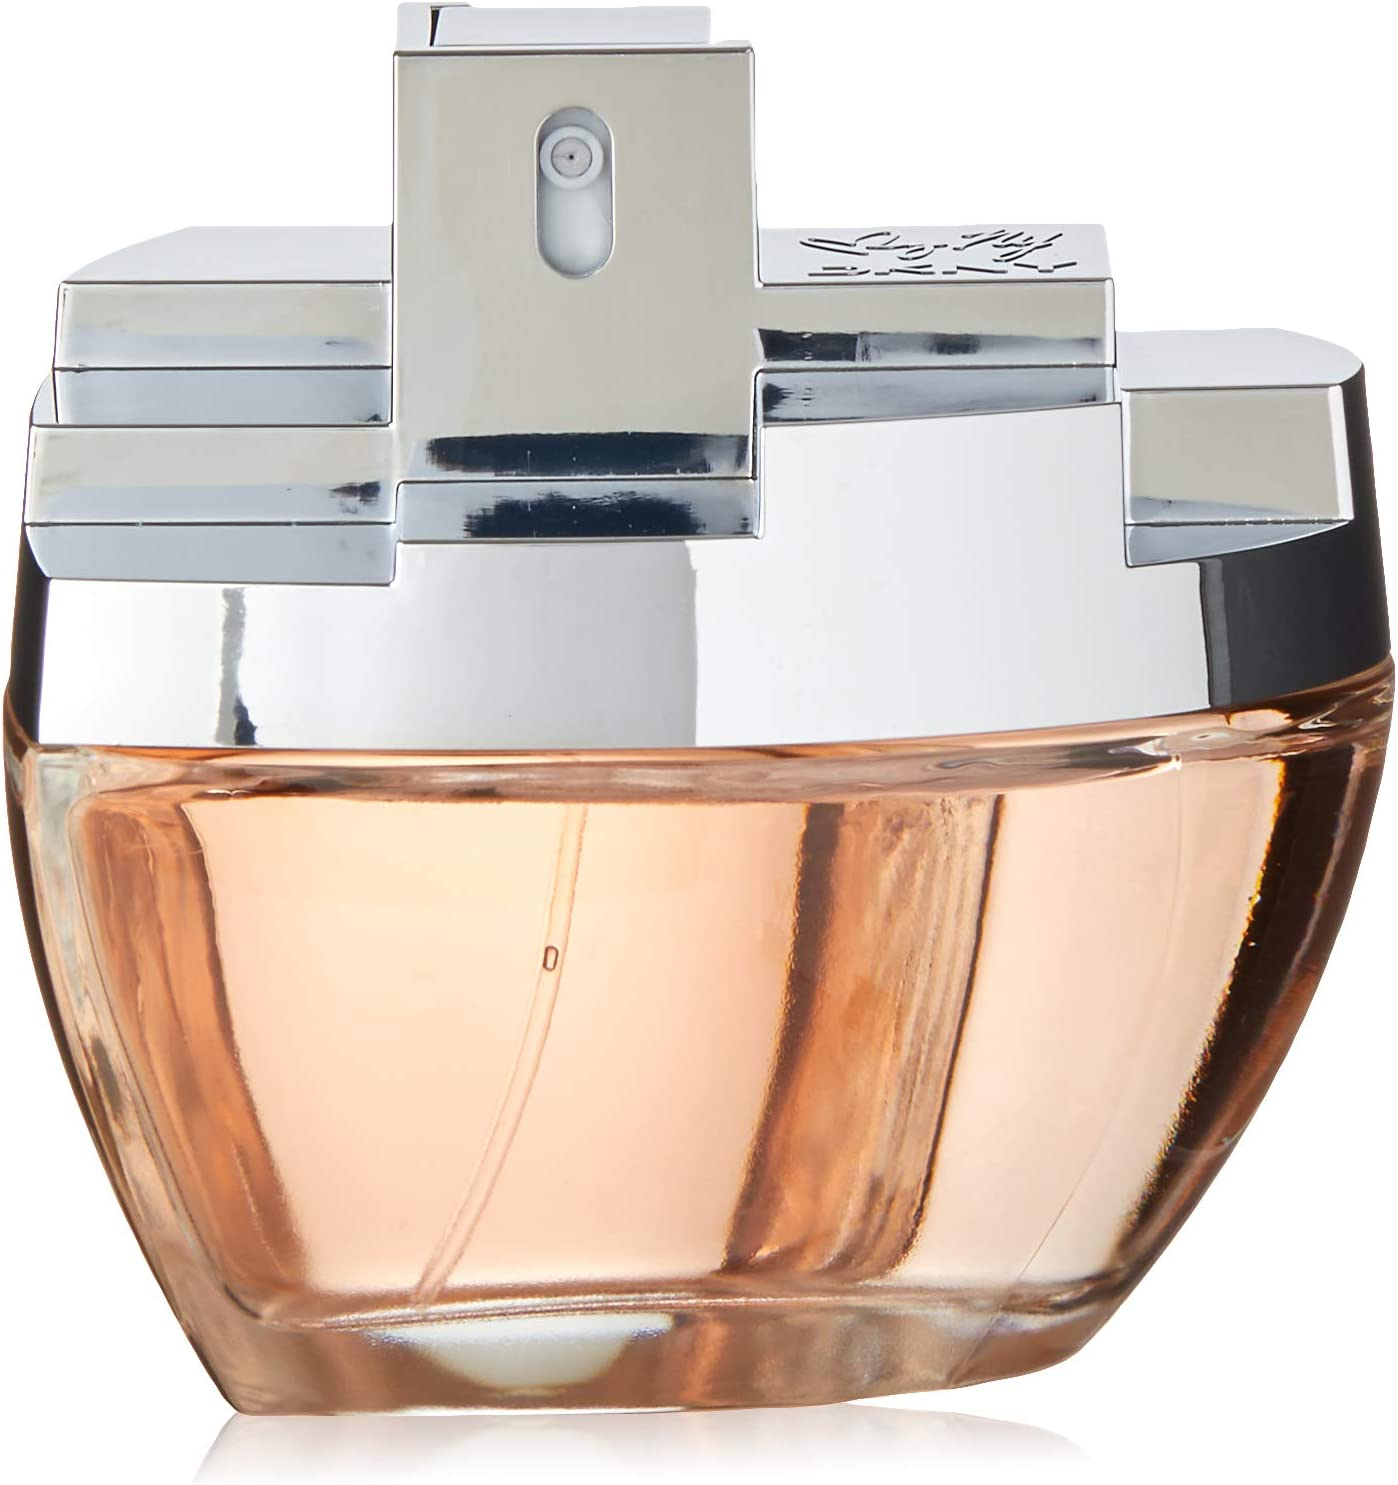 DKNY MYNY 100ml Eau de Parfum Spray for Her